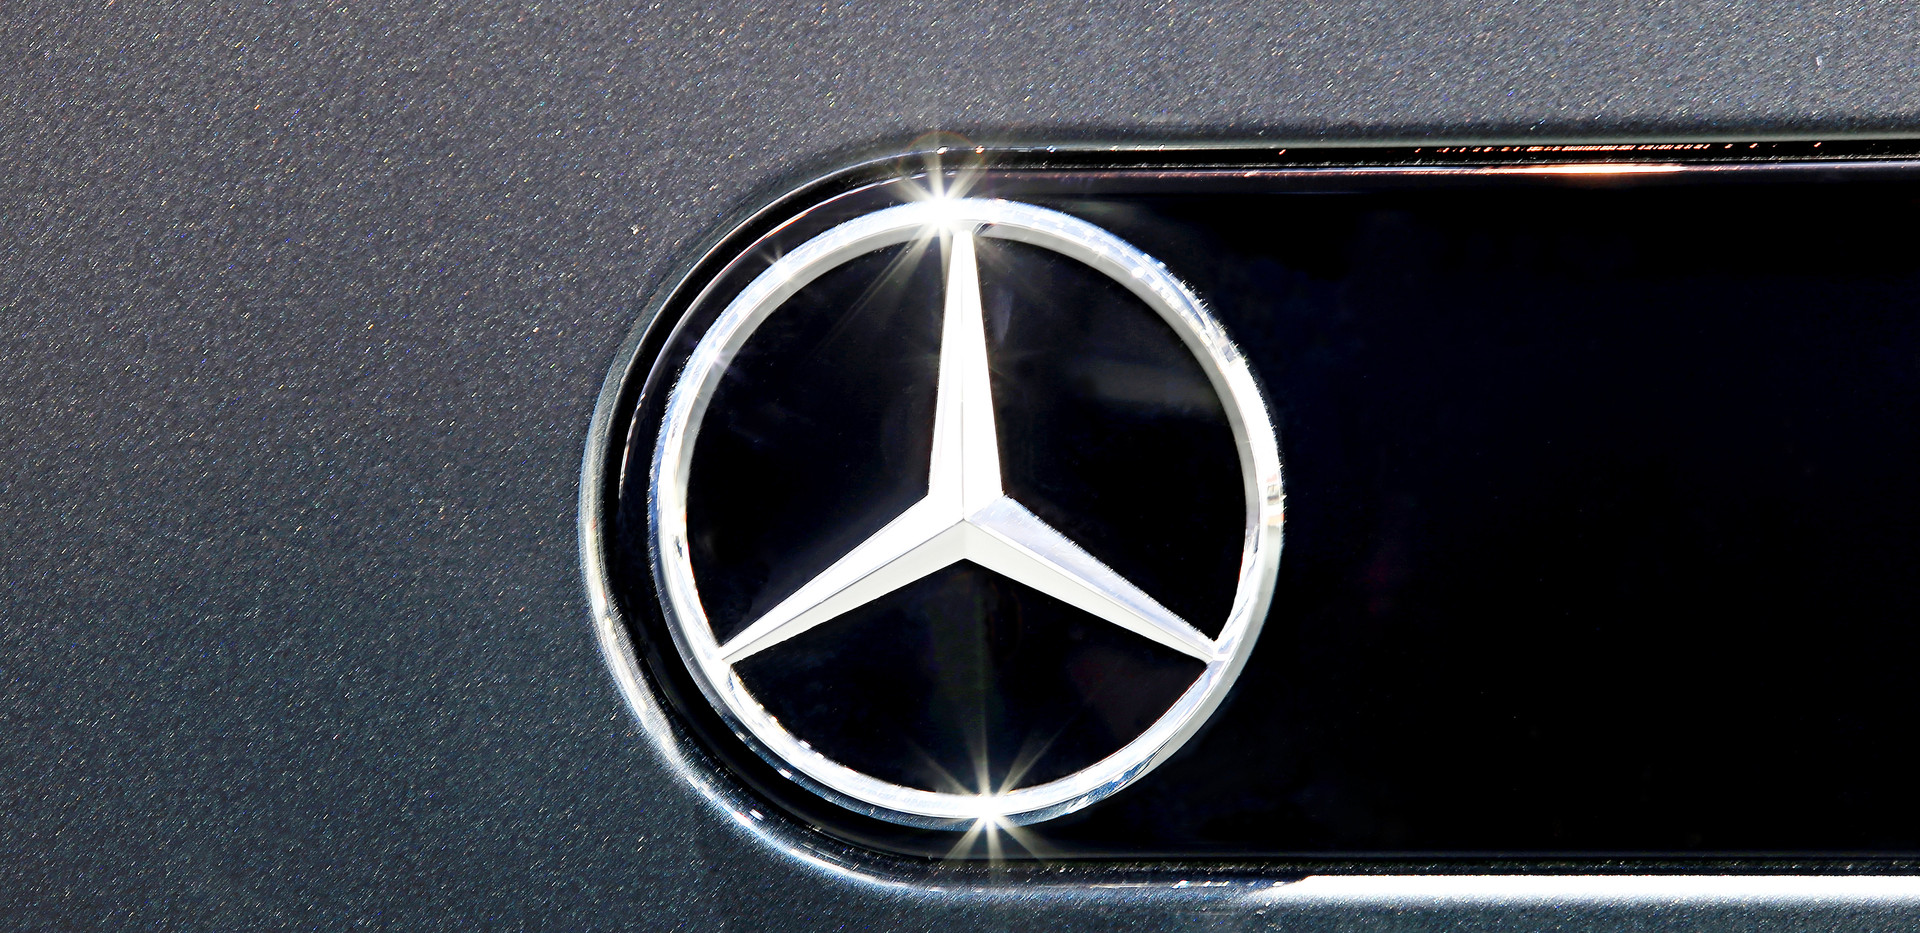 Close Up Logo Of Mercedes Benz On Black